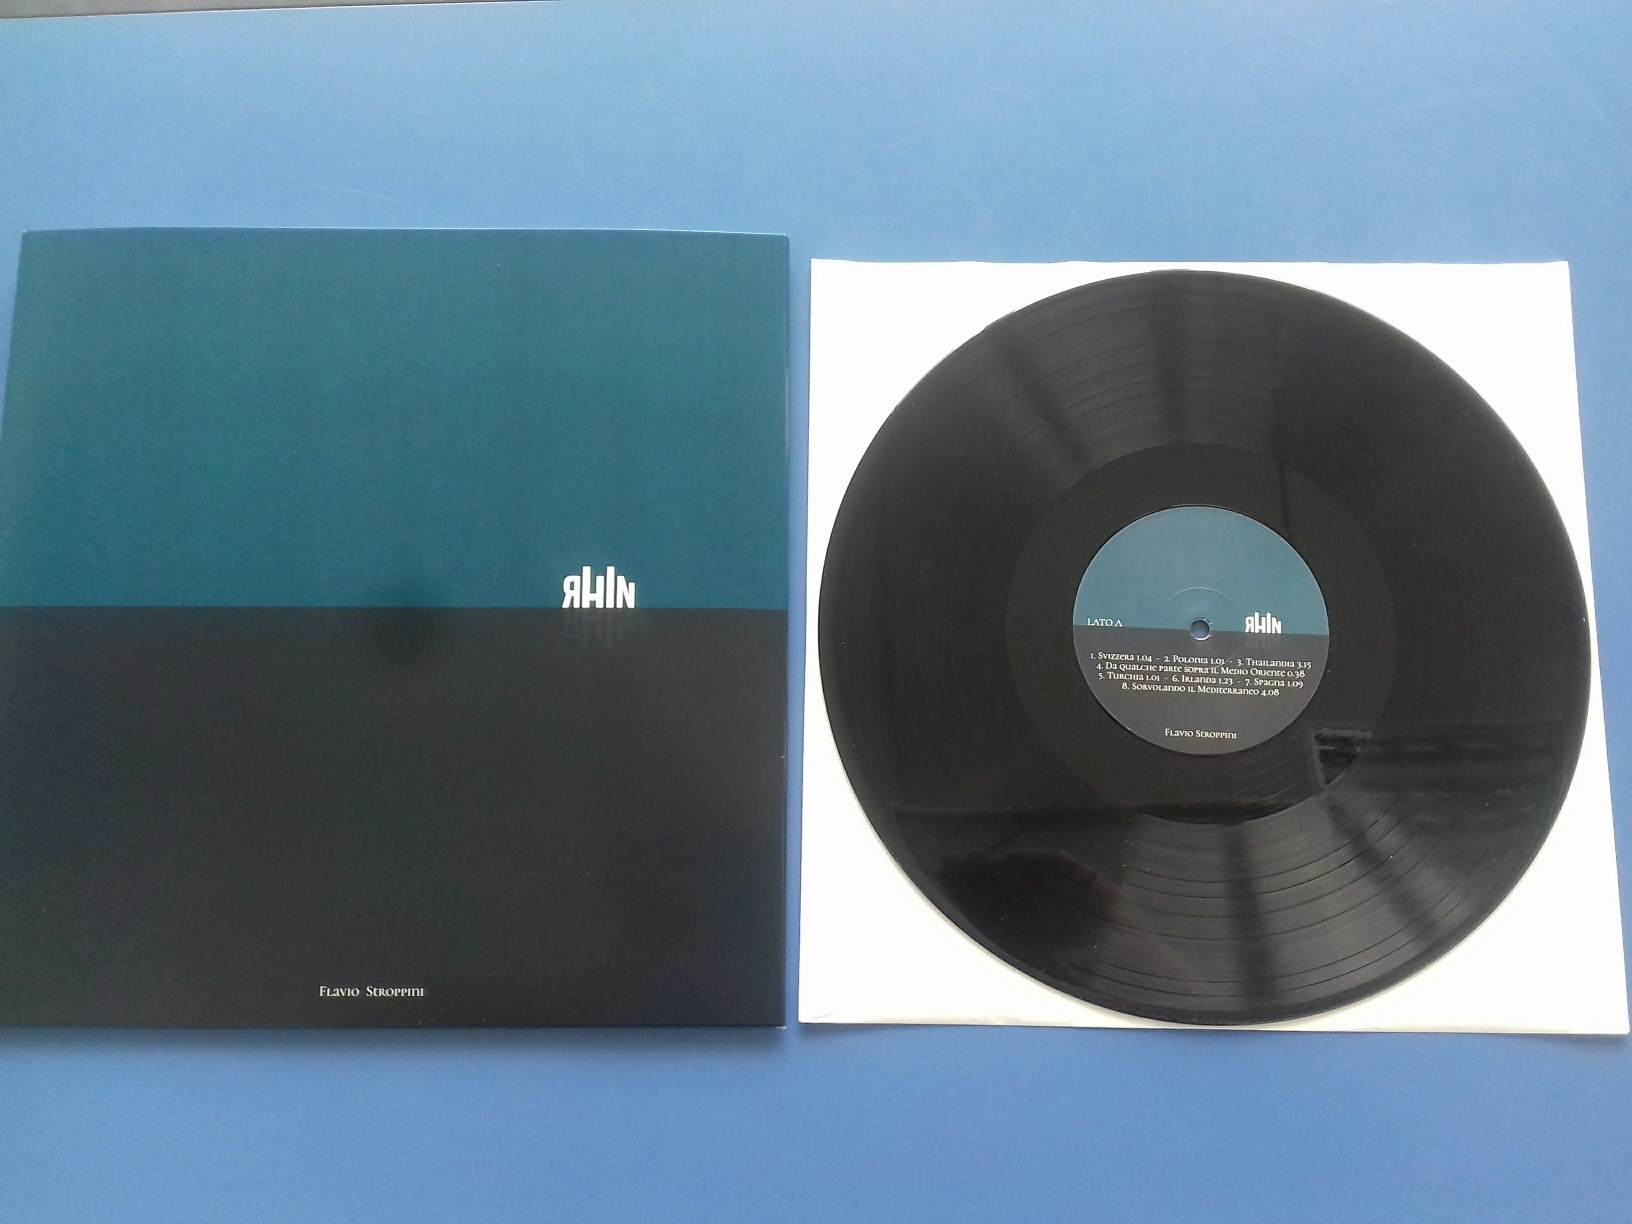 """RHiN"" disco in Vinile 12″ di Flavio Stroppini"